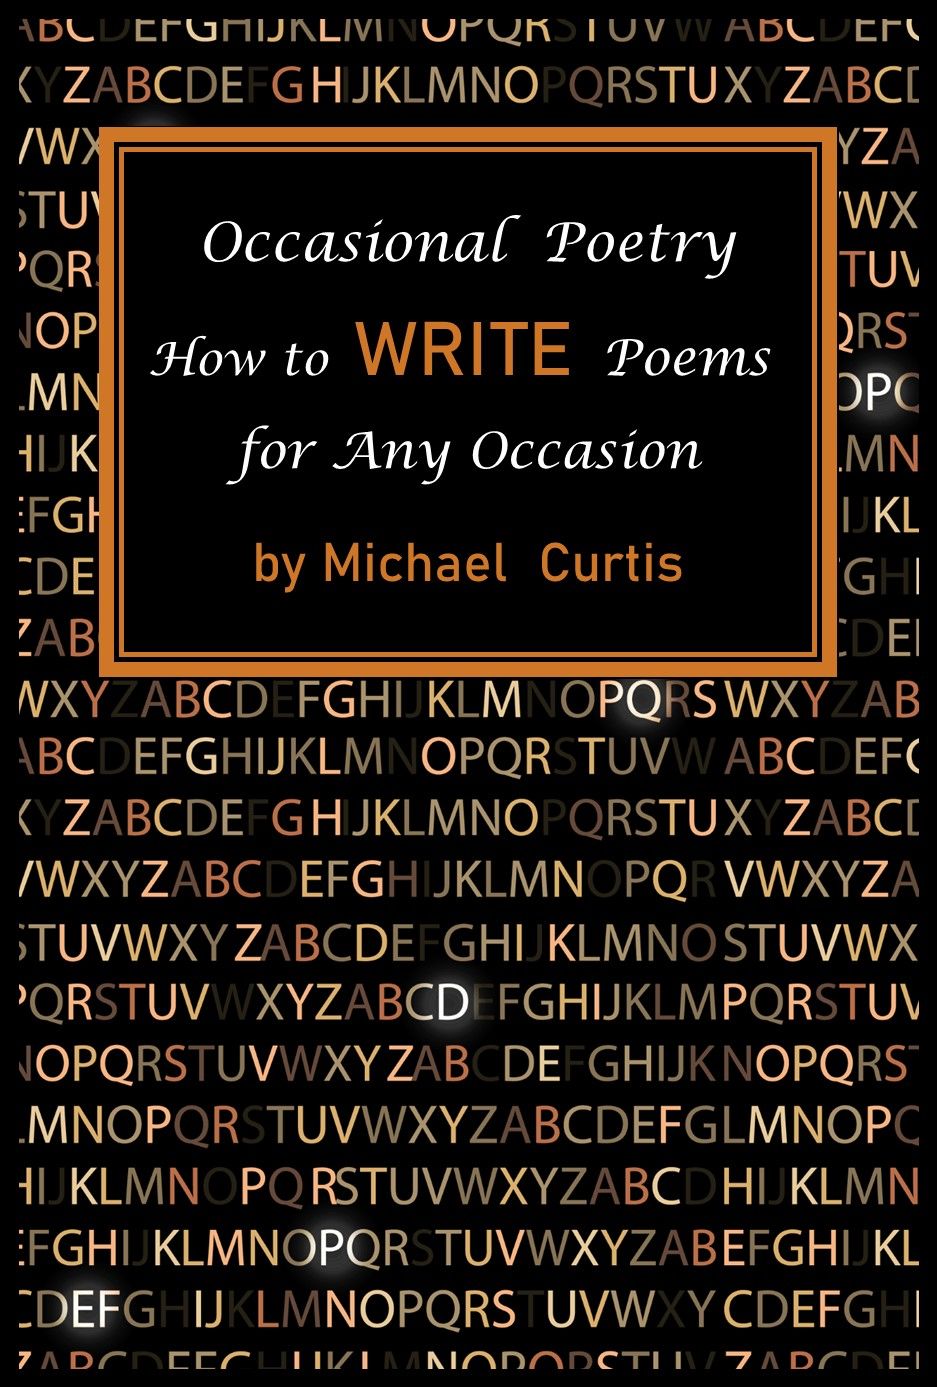 https://secureservercdn.net/198.71.233.51/fh1.fab.myftpupload.com/wp-content/uploads/2020/01/6.-Occasional-Poetry-Front-Cover-for-printing.jpg